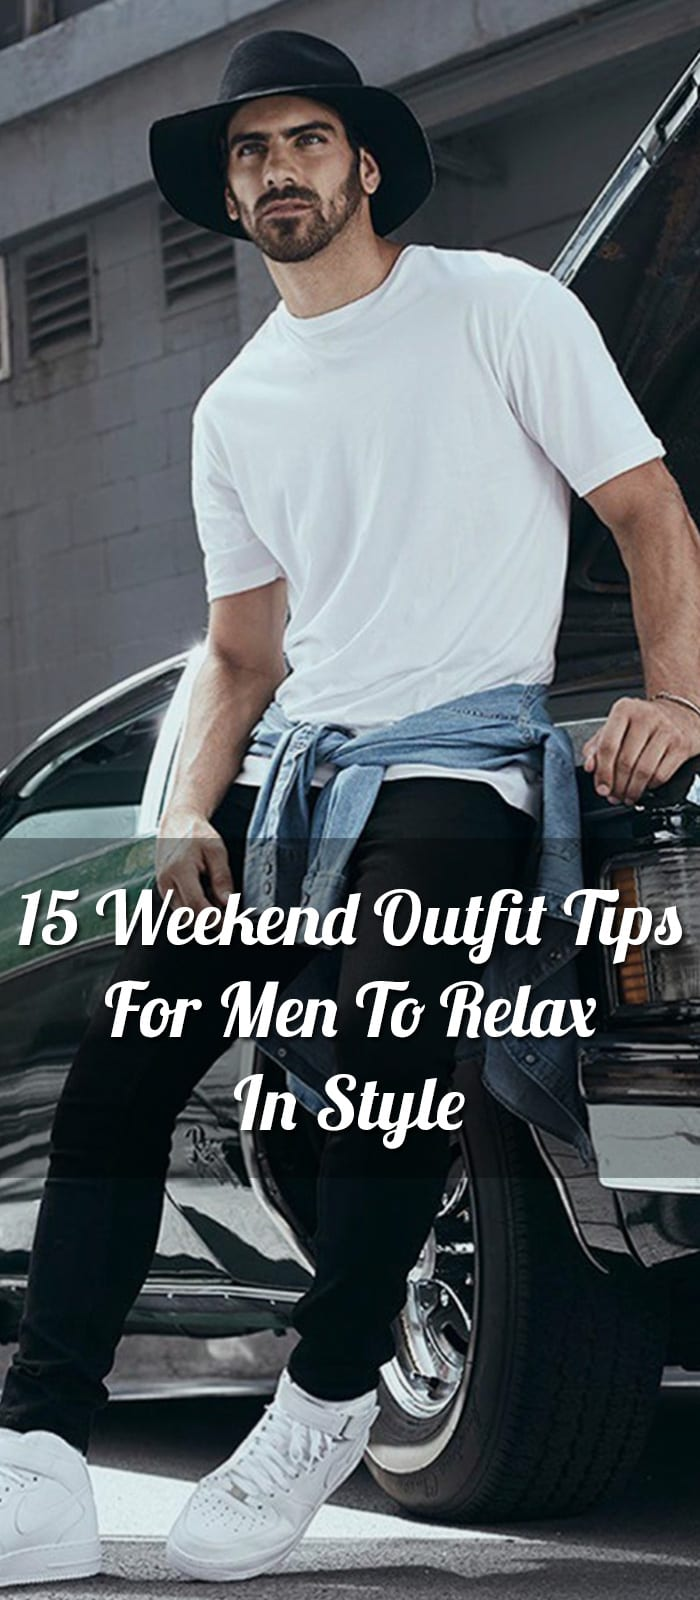 15-Weekend-Outfit-Tips-For-Men-To-Relax-In-Style